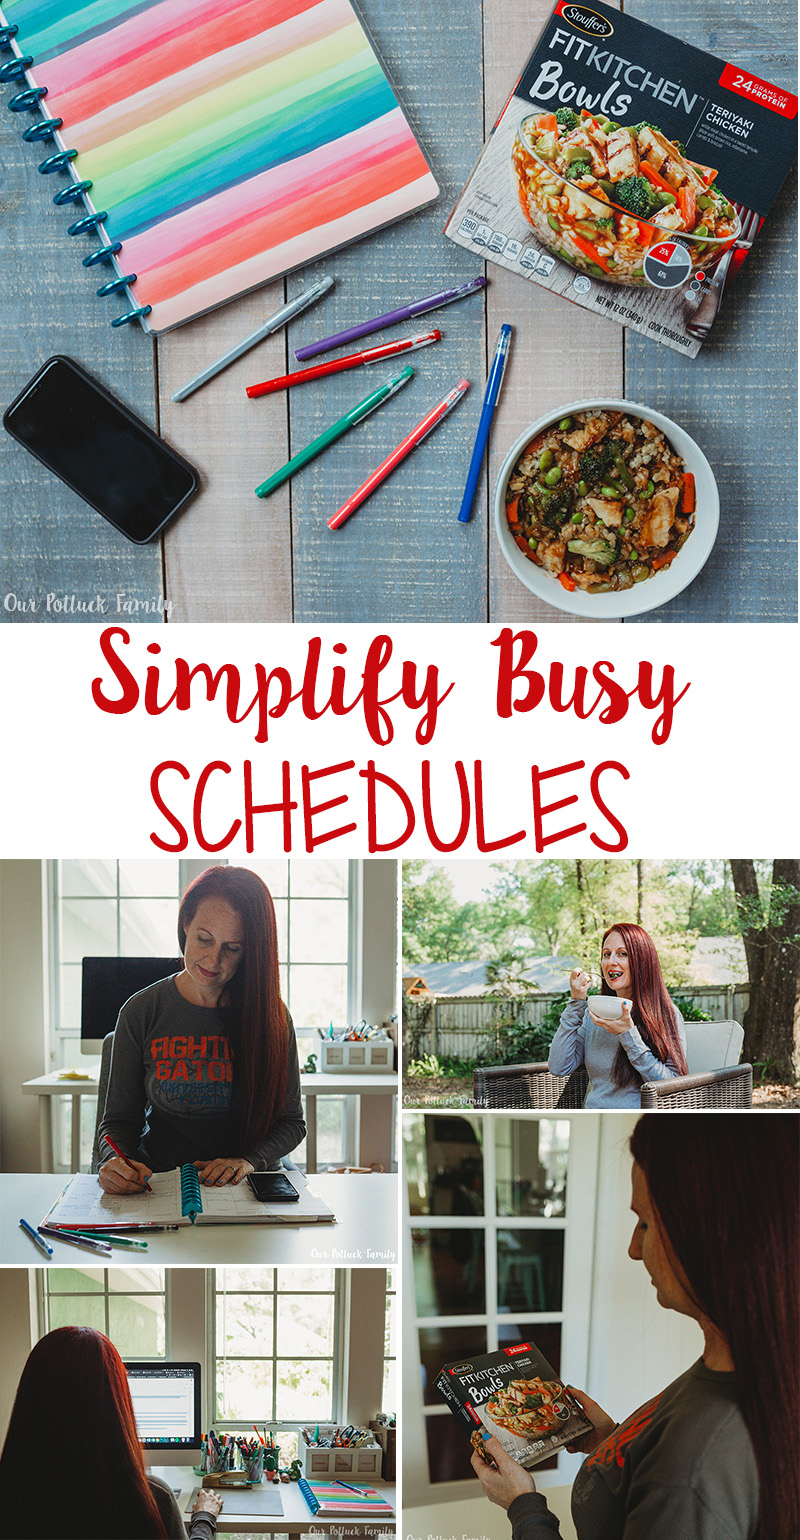 Simplify Busy Schedules